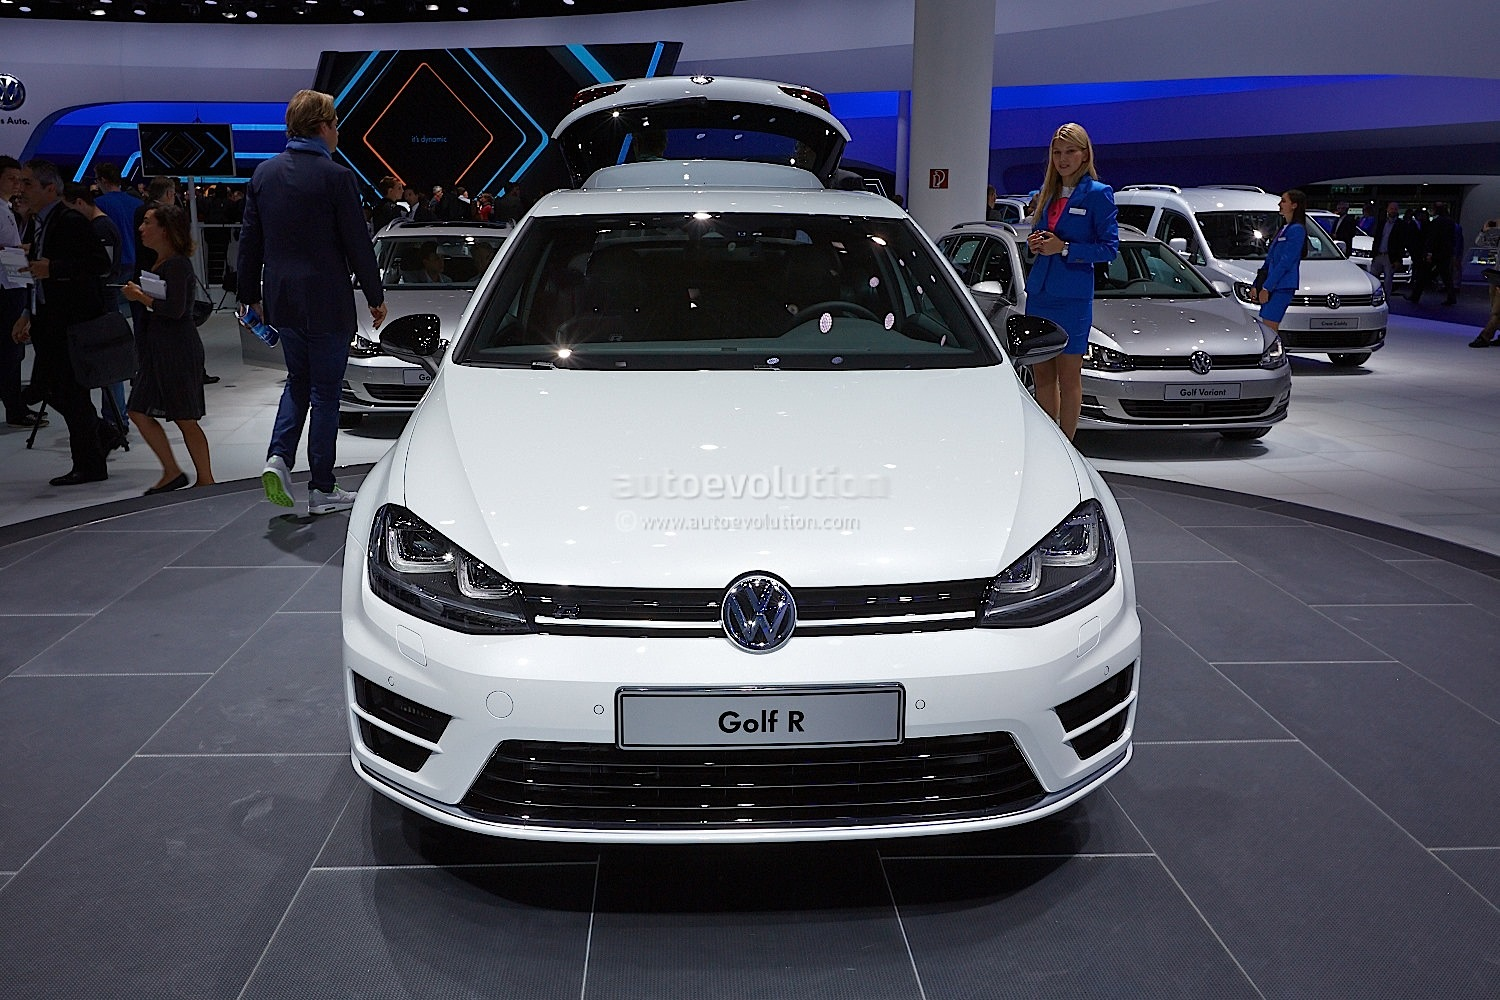 Mercedes B Class Electric >> Frankfurt 2013: New Golf R Makes World Debut [Live Photos] - autoevolution